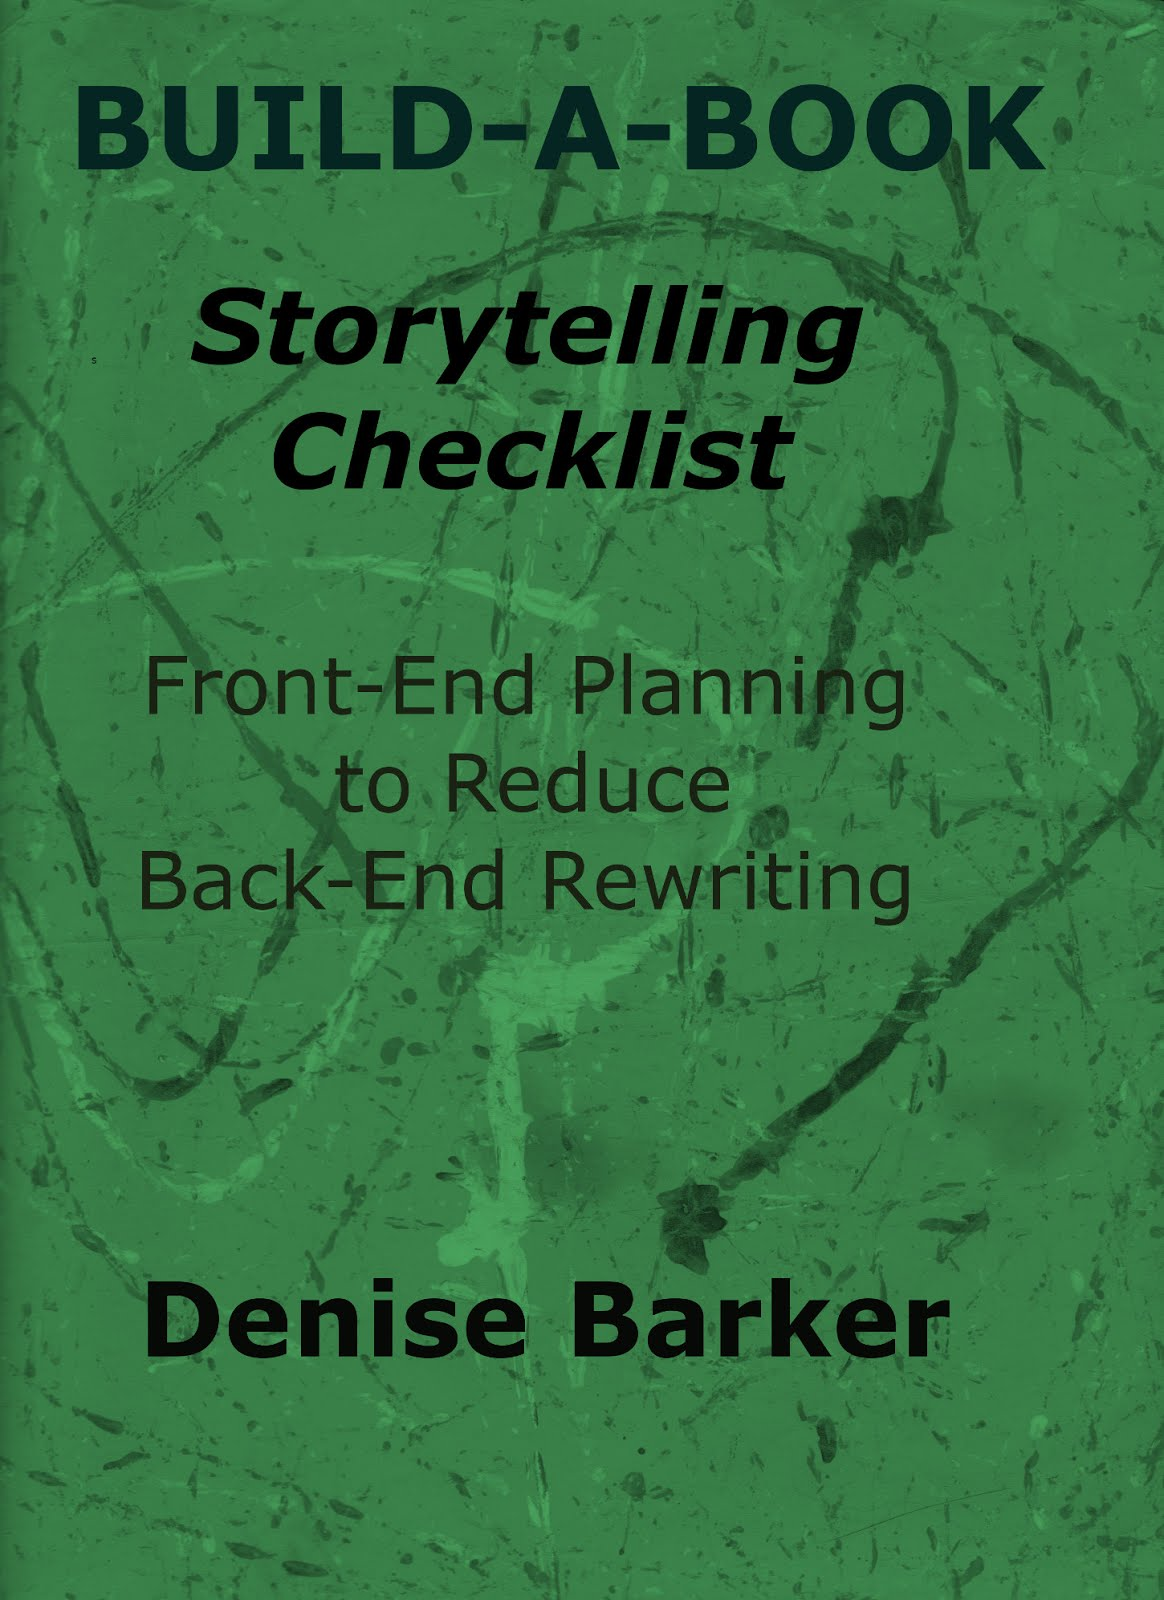 BUILD-A-BOOK Storytelling Checklist